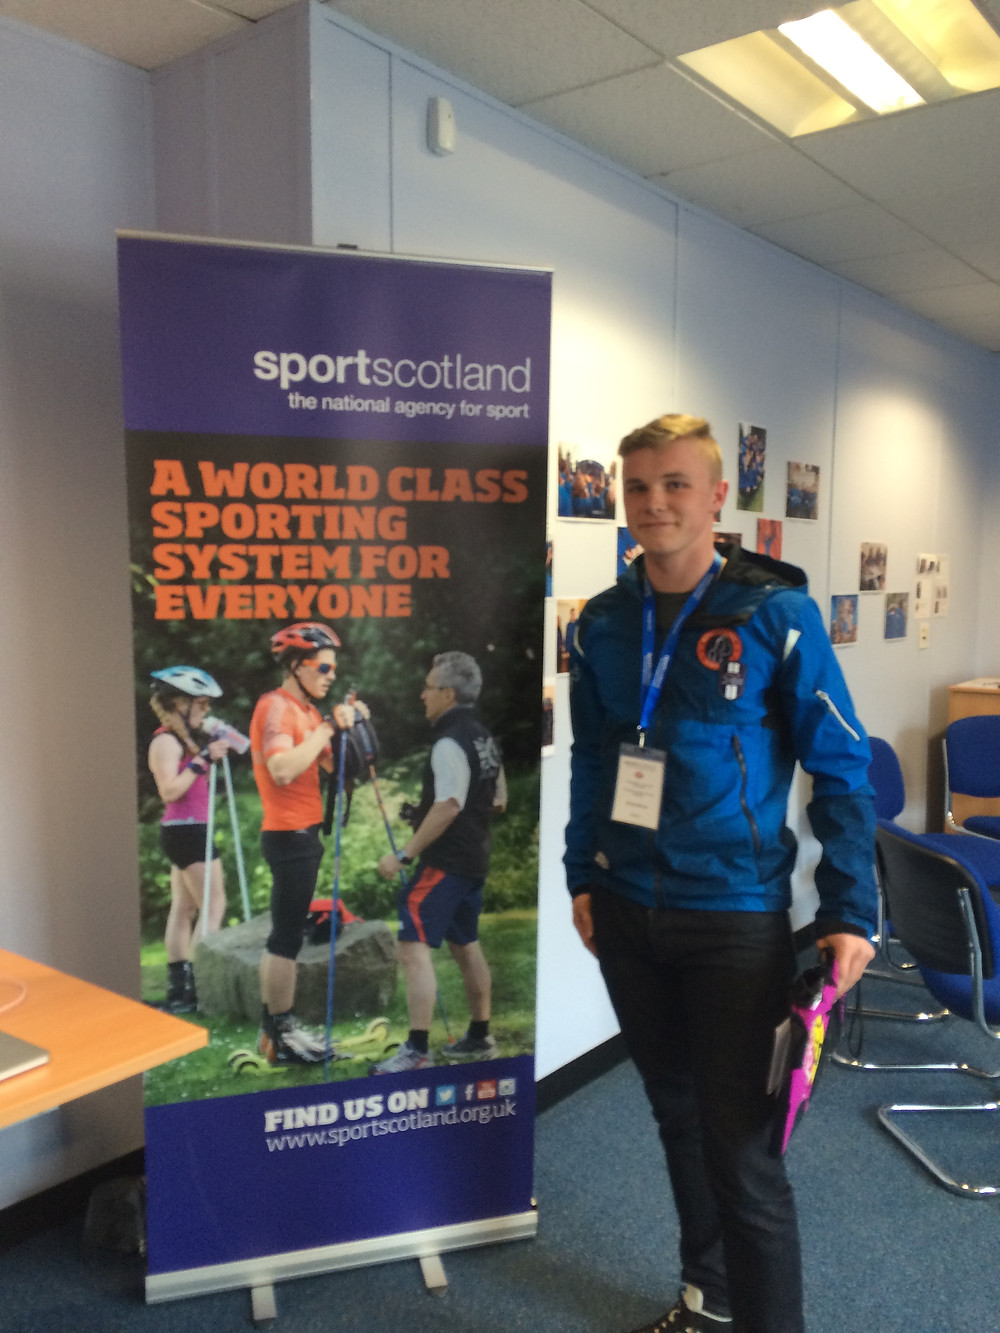 It was great to see my sport on display at the SportScotland headquaters in Edinburgh - it made it much easier to explain to other candidates